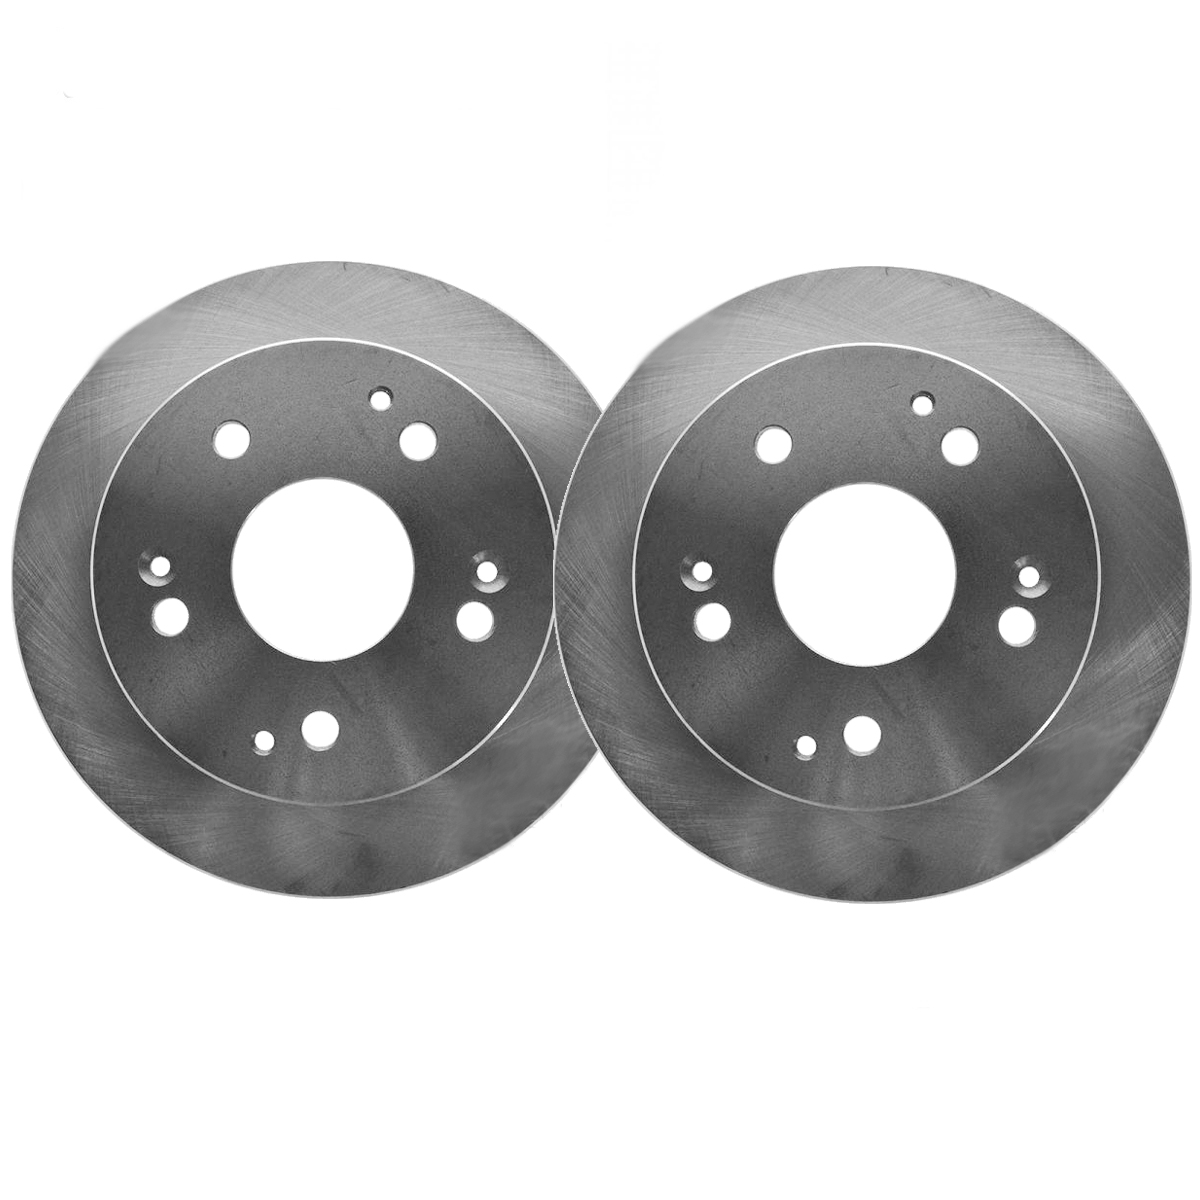 """2012 Acura Tsx Special Edition For Sale: Pair (2) 11.10"""" (282mm) Premium REAR Brake Rotors For TSX"""